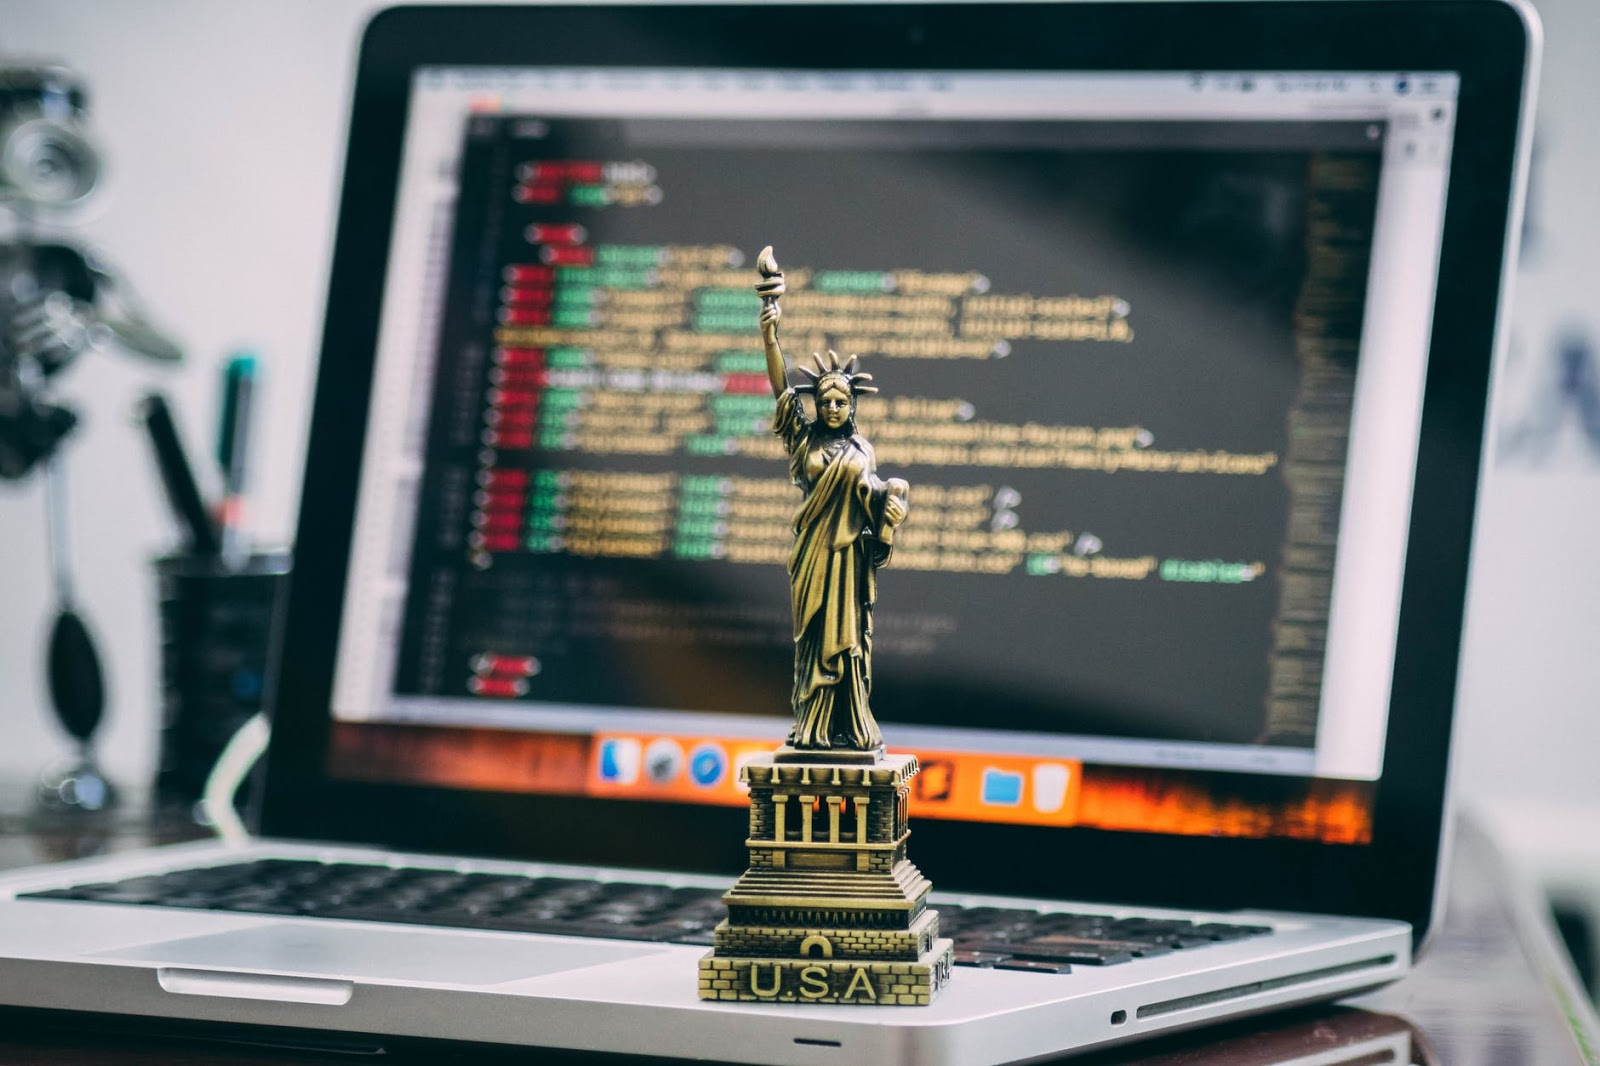 International startups entering the US face many legal hurdles and market challenges